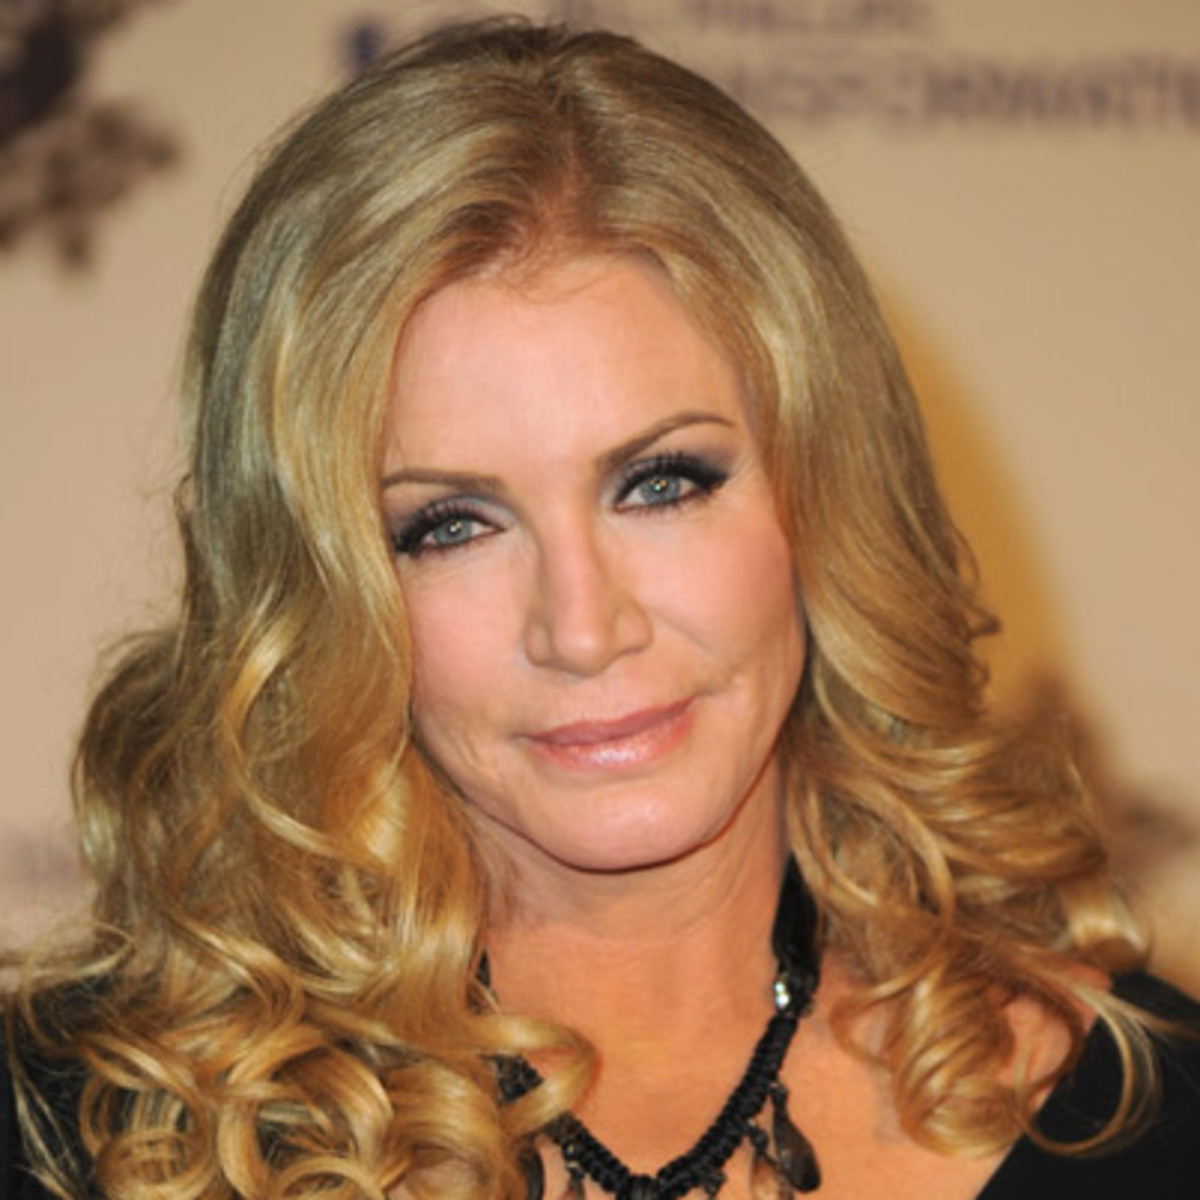 Images Shannon Tweed nudes (54 foto and video), Ass, Paparazzi, Twitter, cameltoe 2015